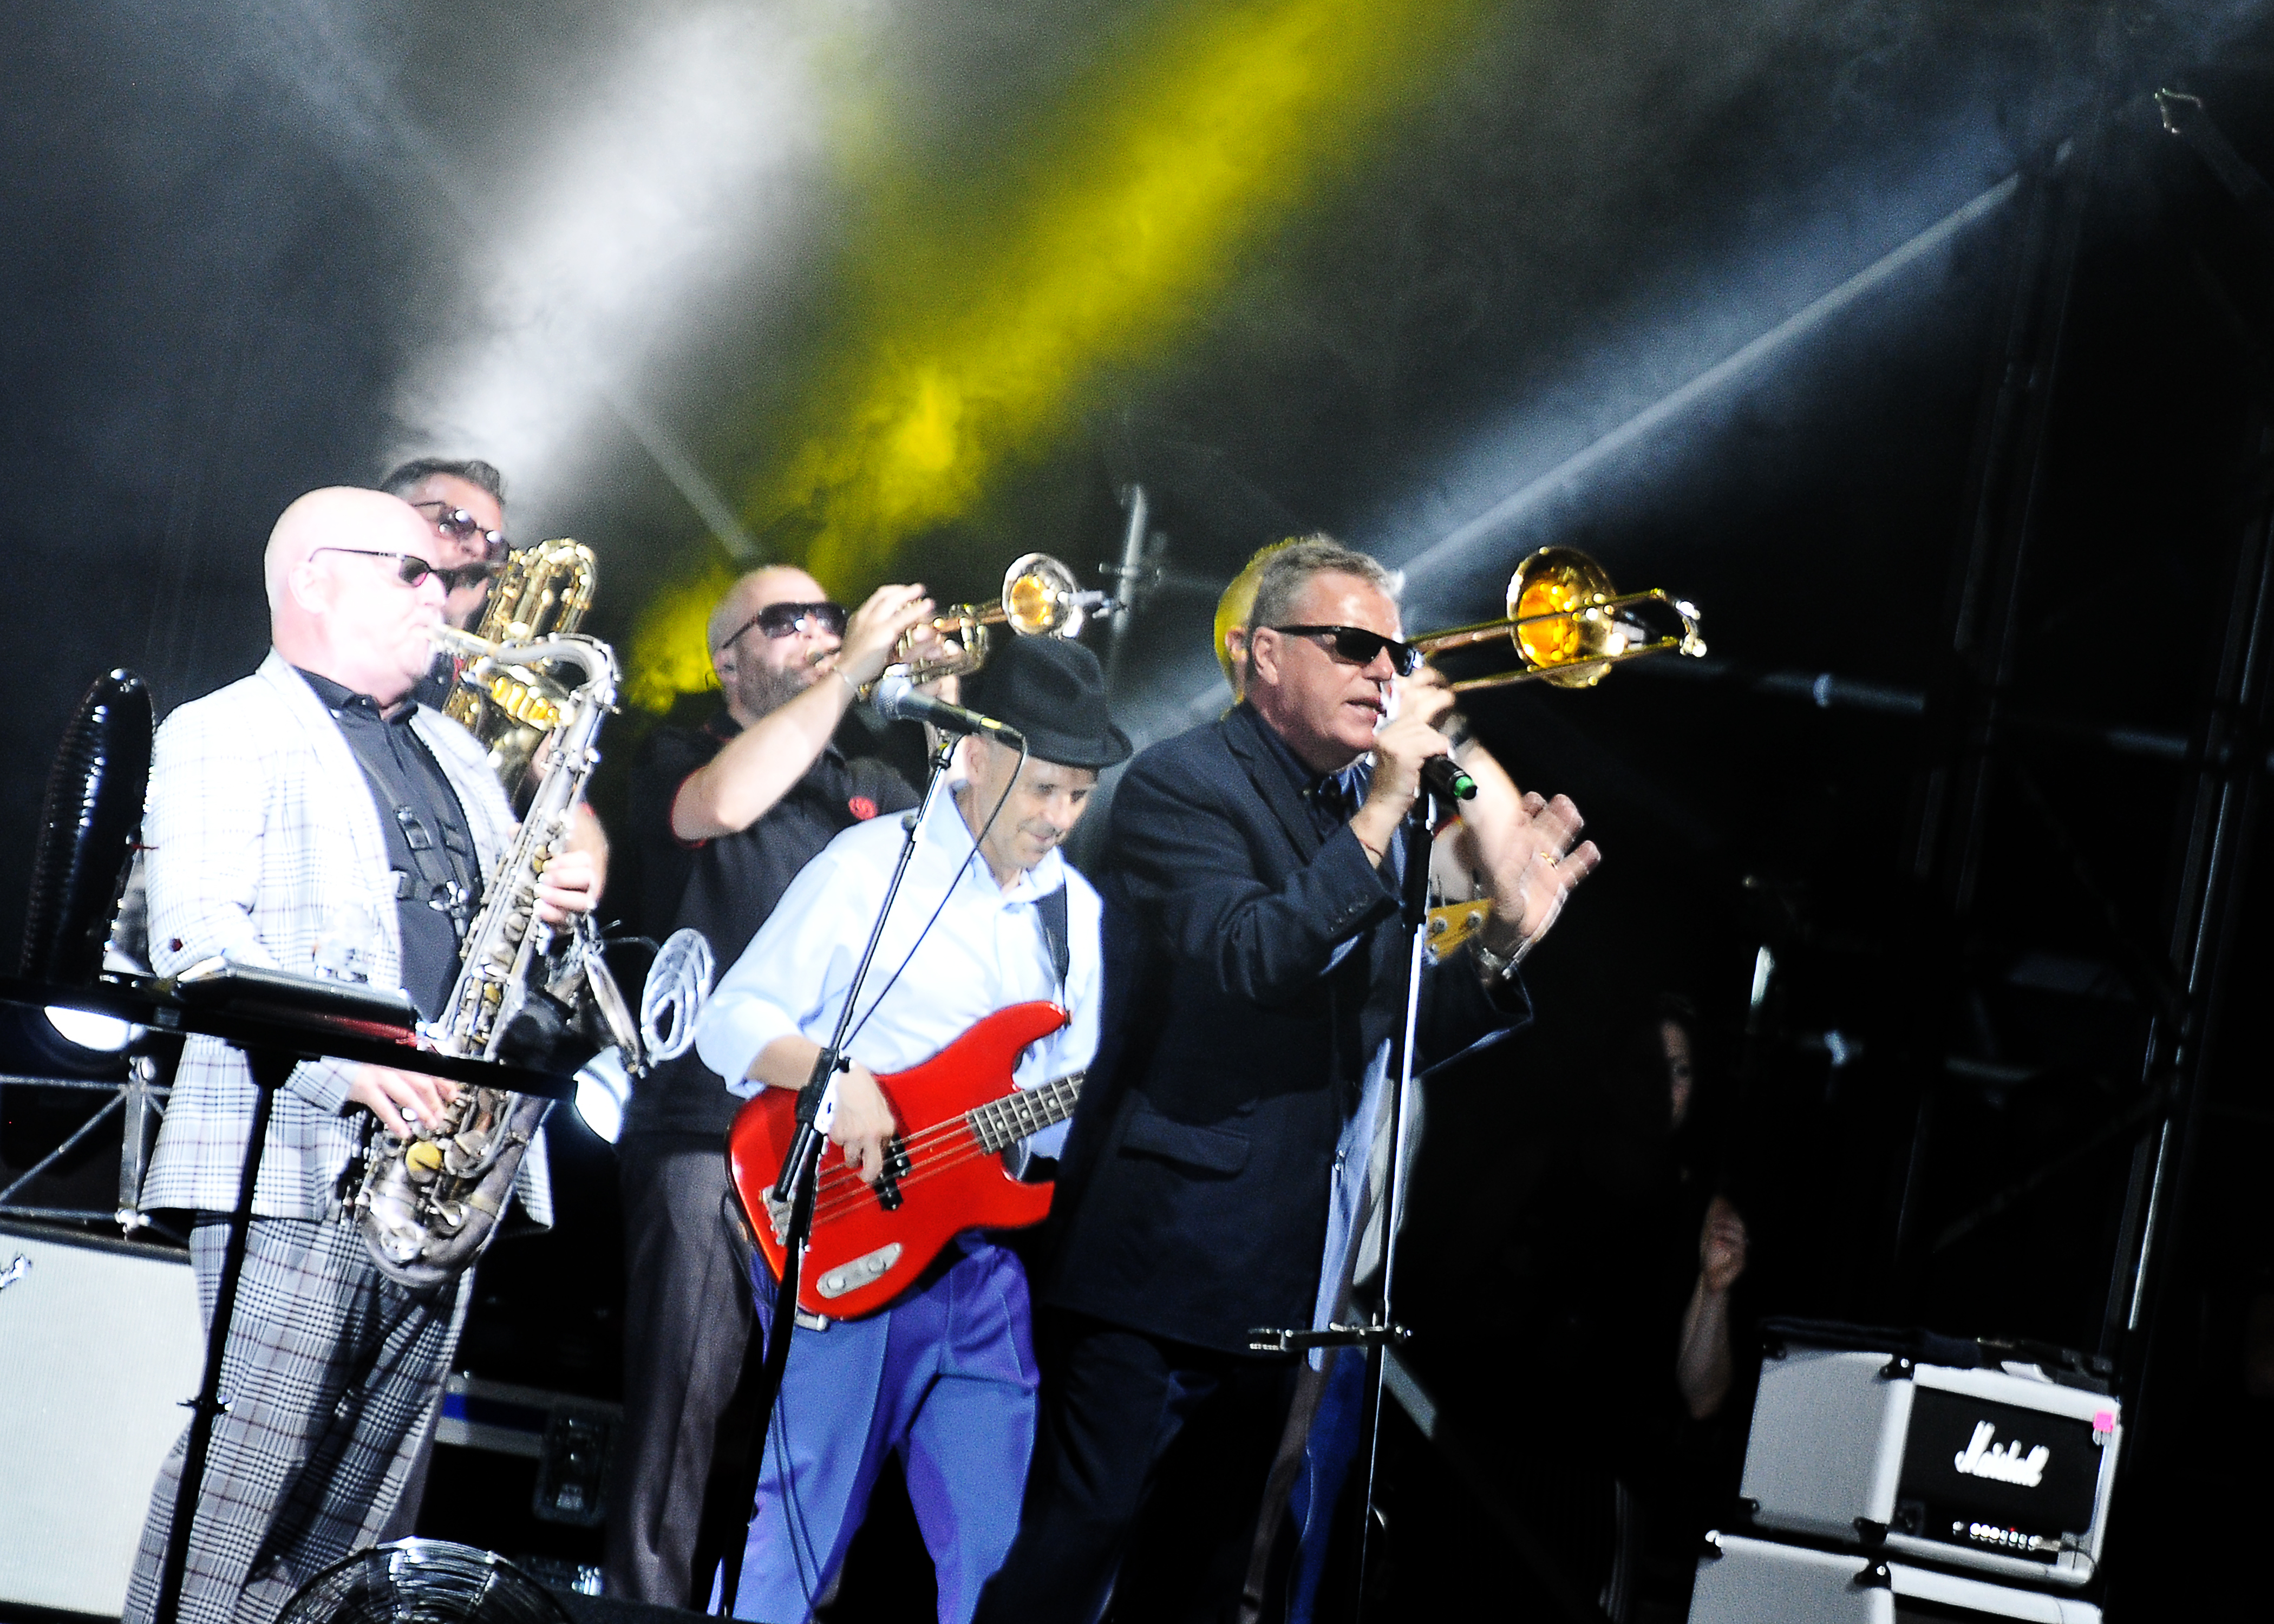 The bsuggs,Madness,Sandown Live 2019